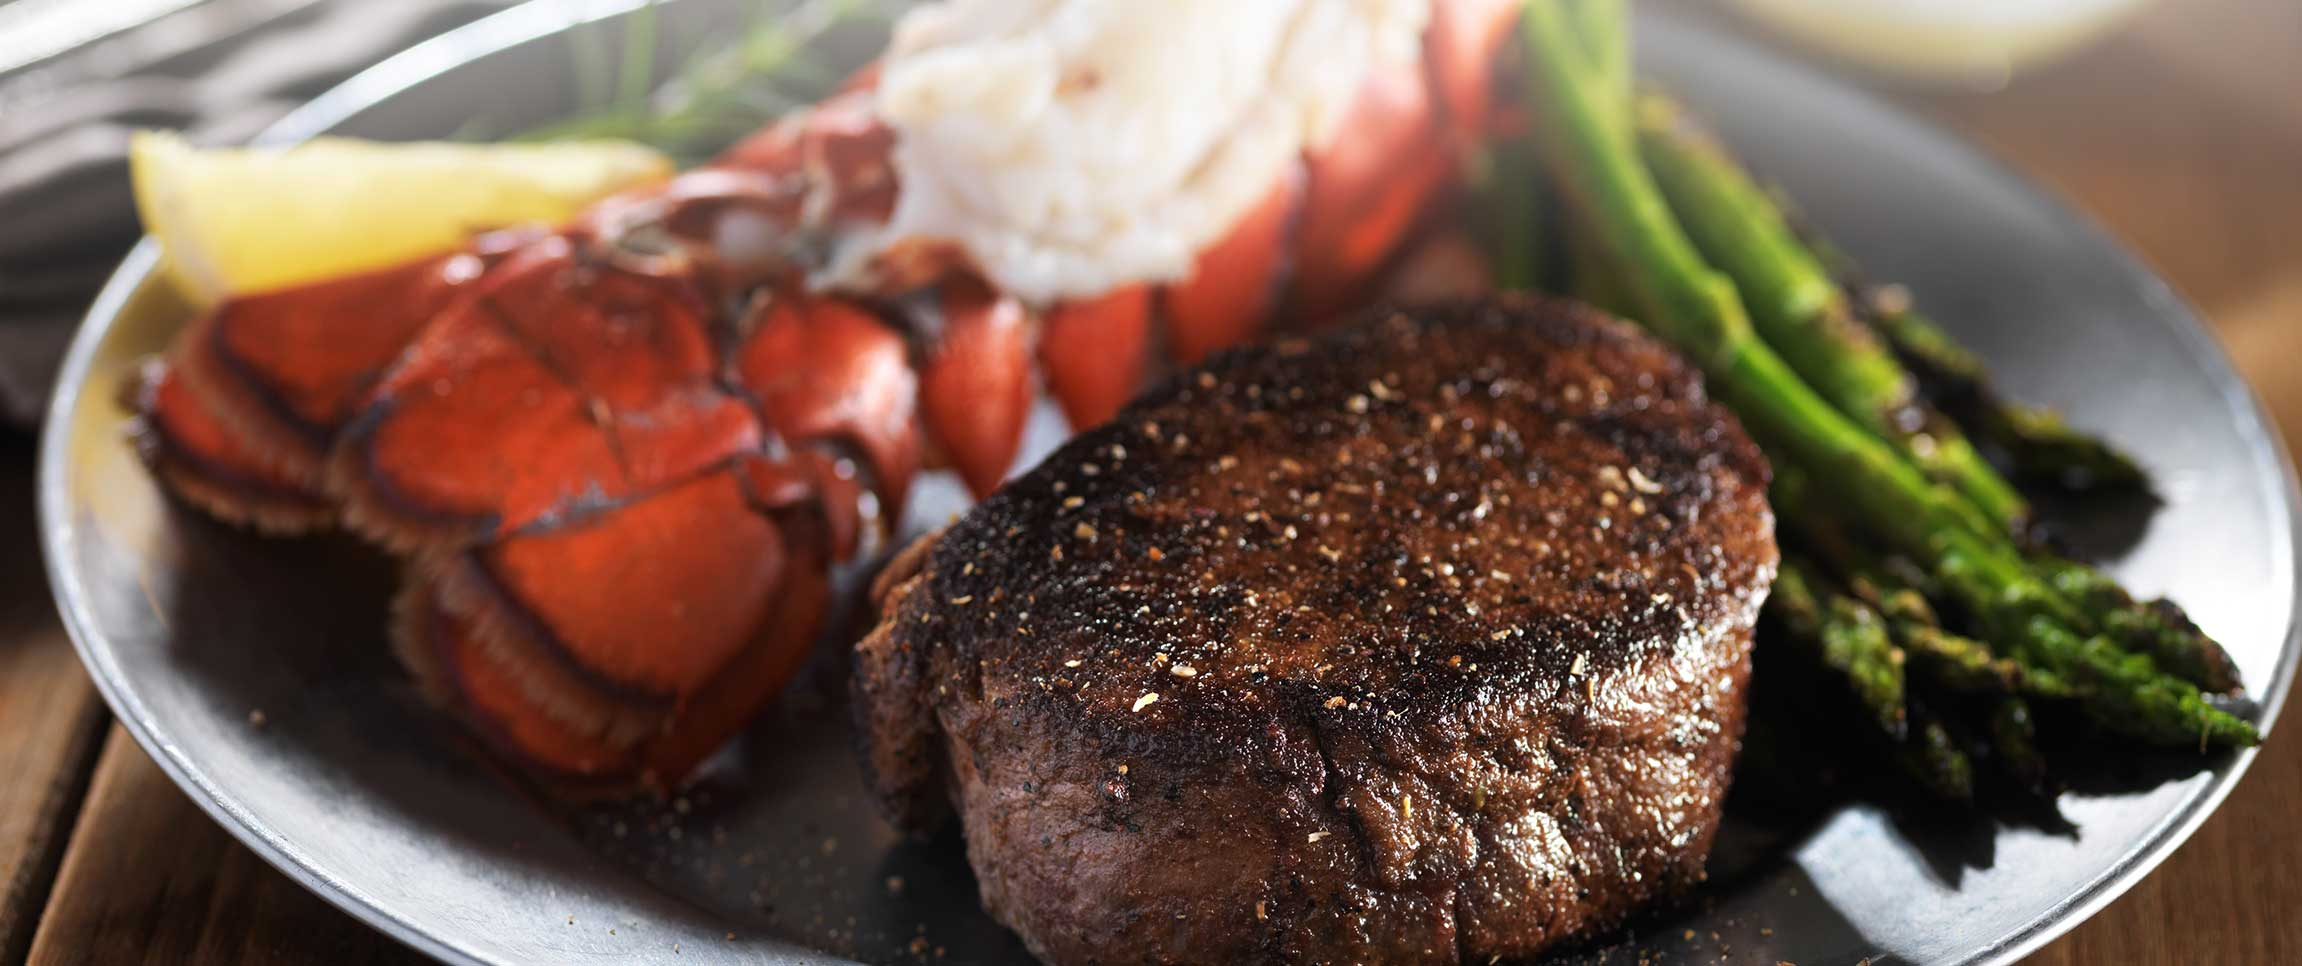 Lobster Steak with Filet of Braveheart Beef